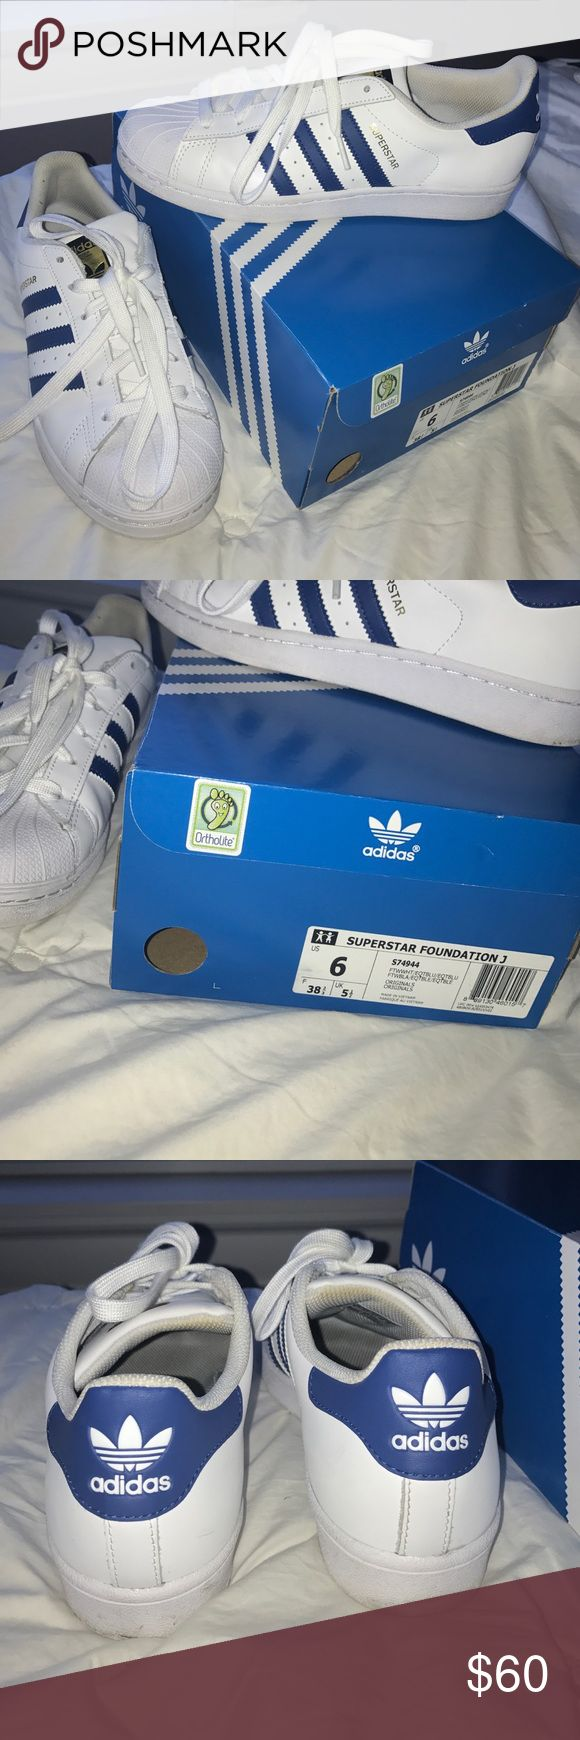 Adidas Originals Blue/ White Superstars Size 6 (i'm a 7, 37 Euro and they fit me perfectly, Adidas run a size larger) unisex adidas superstars. Worn once but in perfect condition. Comes with box Adidas Shoes Sneakers